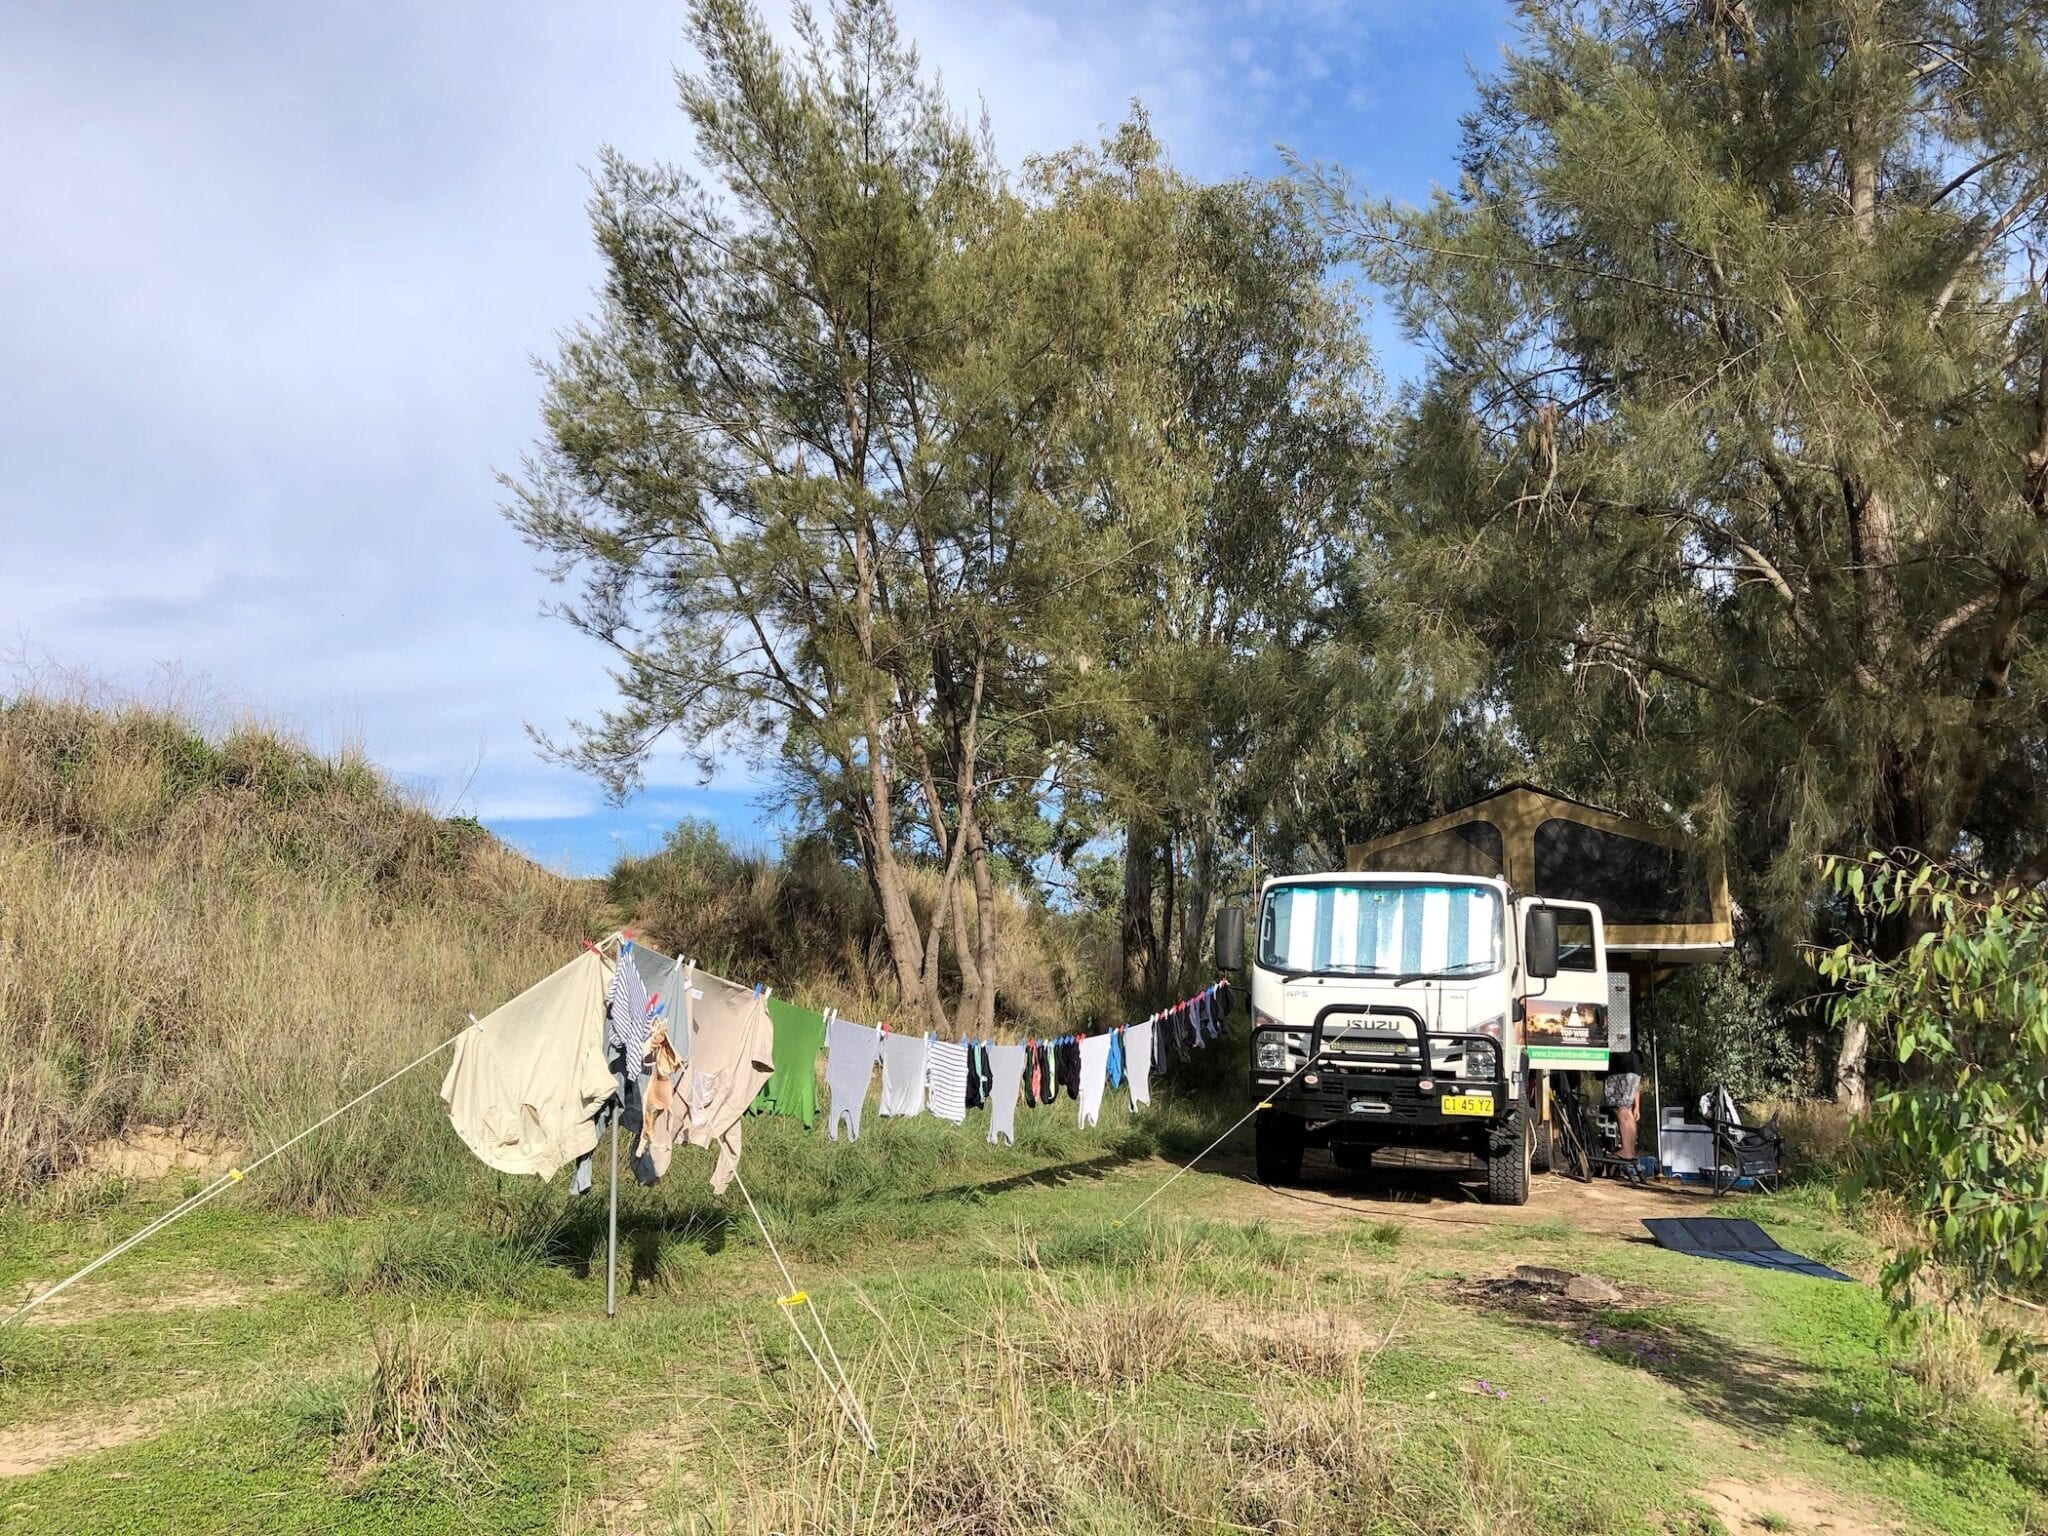 Washing day in the bush. Using our REDARC 12V inverter to power our portable twin tub washing machine.